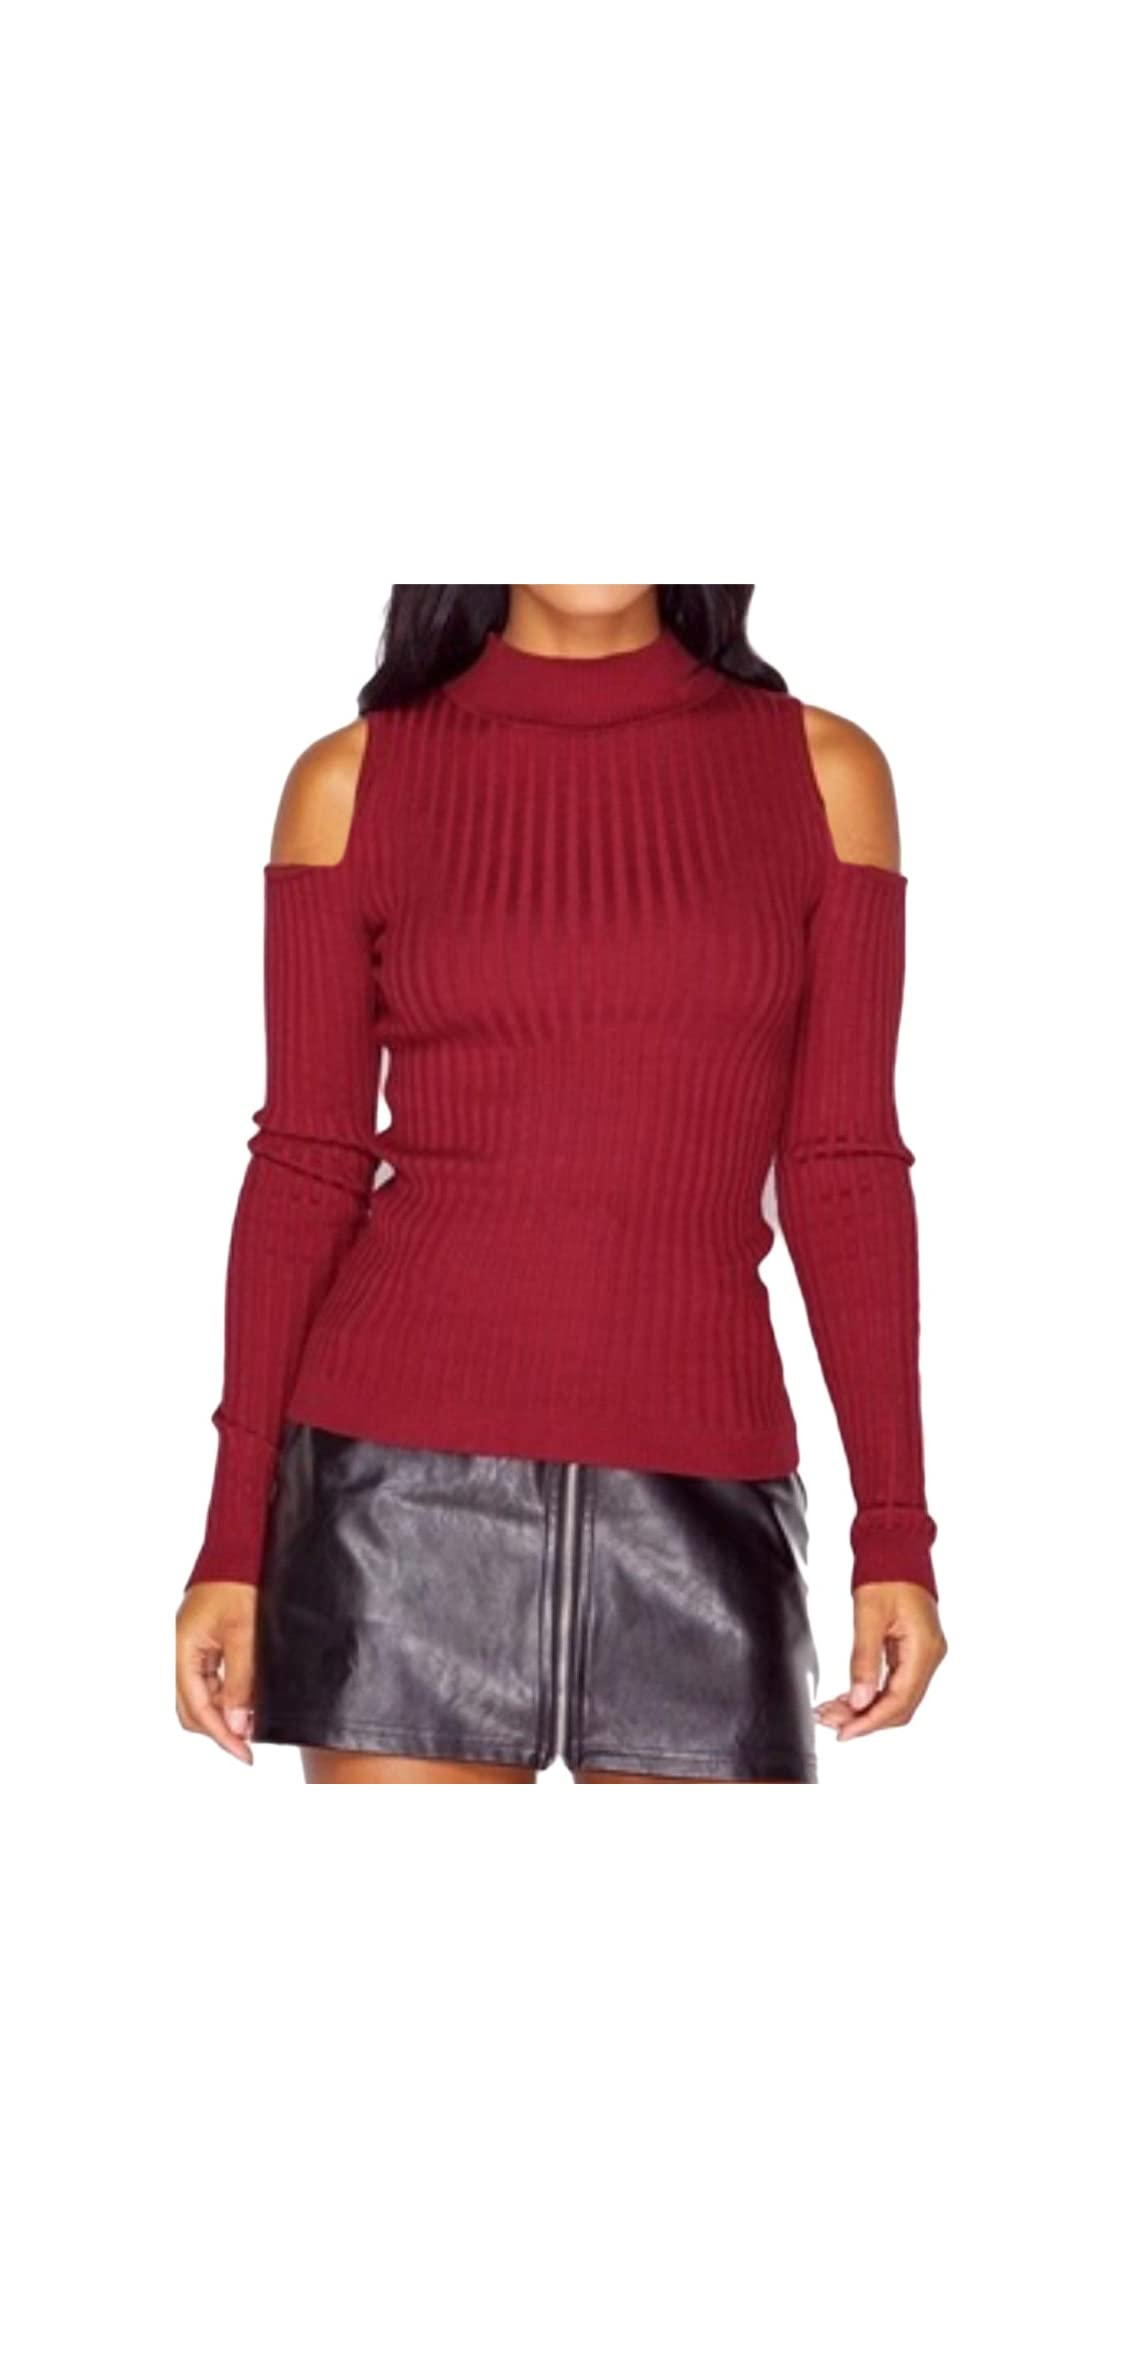 Womens Casual Autumn Cold Shoulder Sweater Kitted Jumper